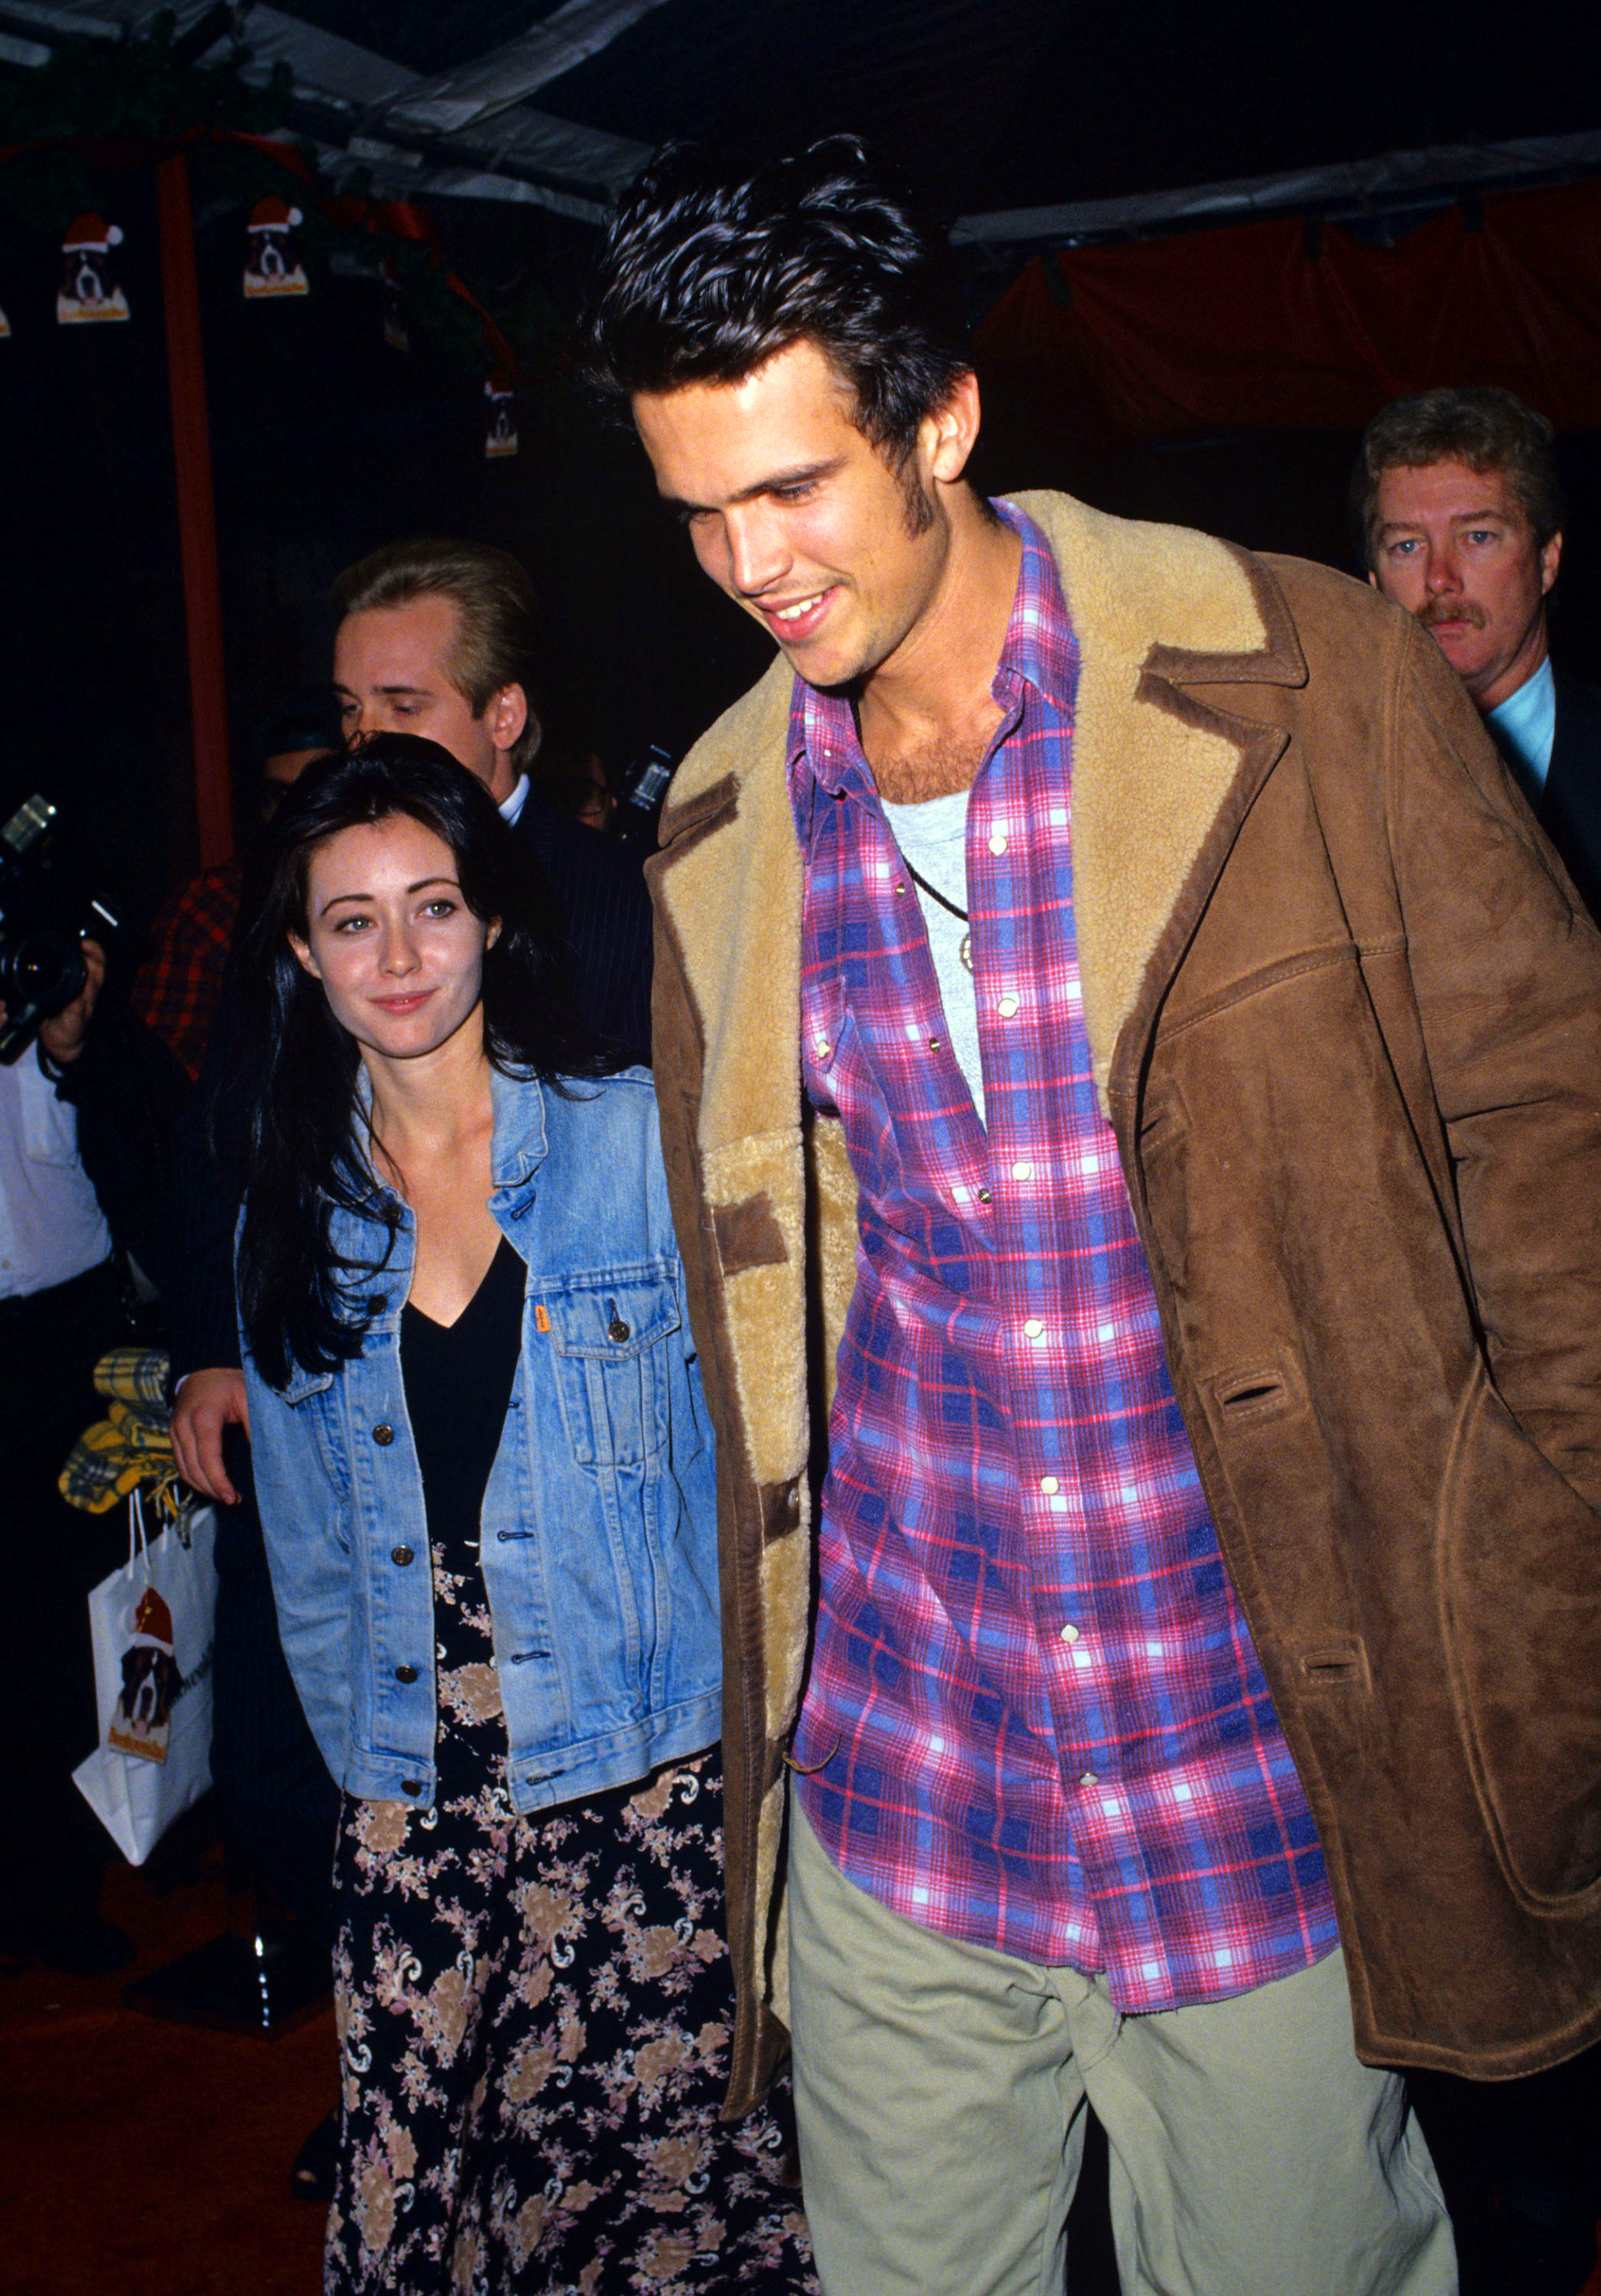 """Hollywoods shortest marriages - Doherty, then 22, wed her beau of one month in 1993. """"I care about being with my husband,"""" the 90210 alum said at the time."""